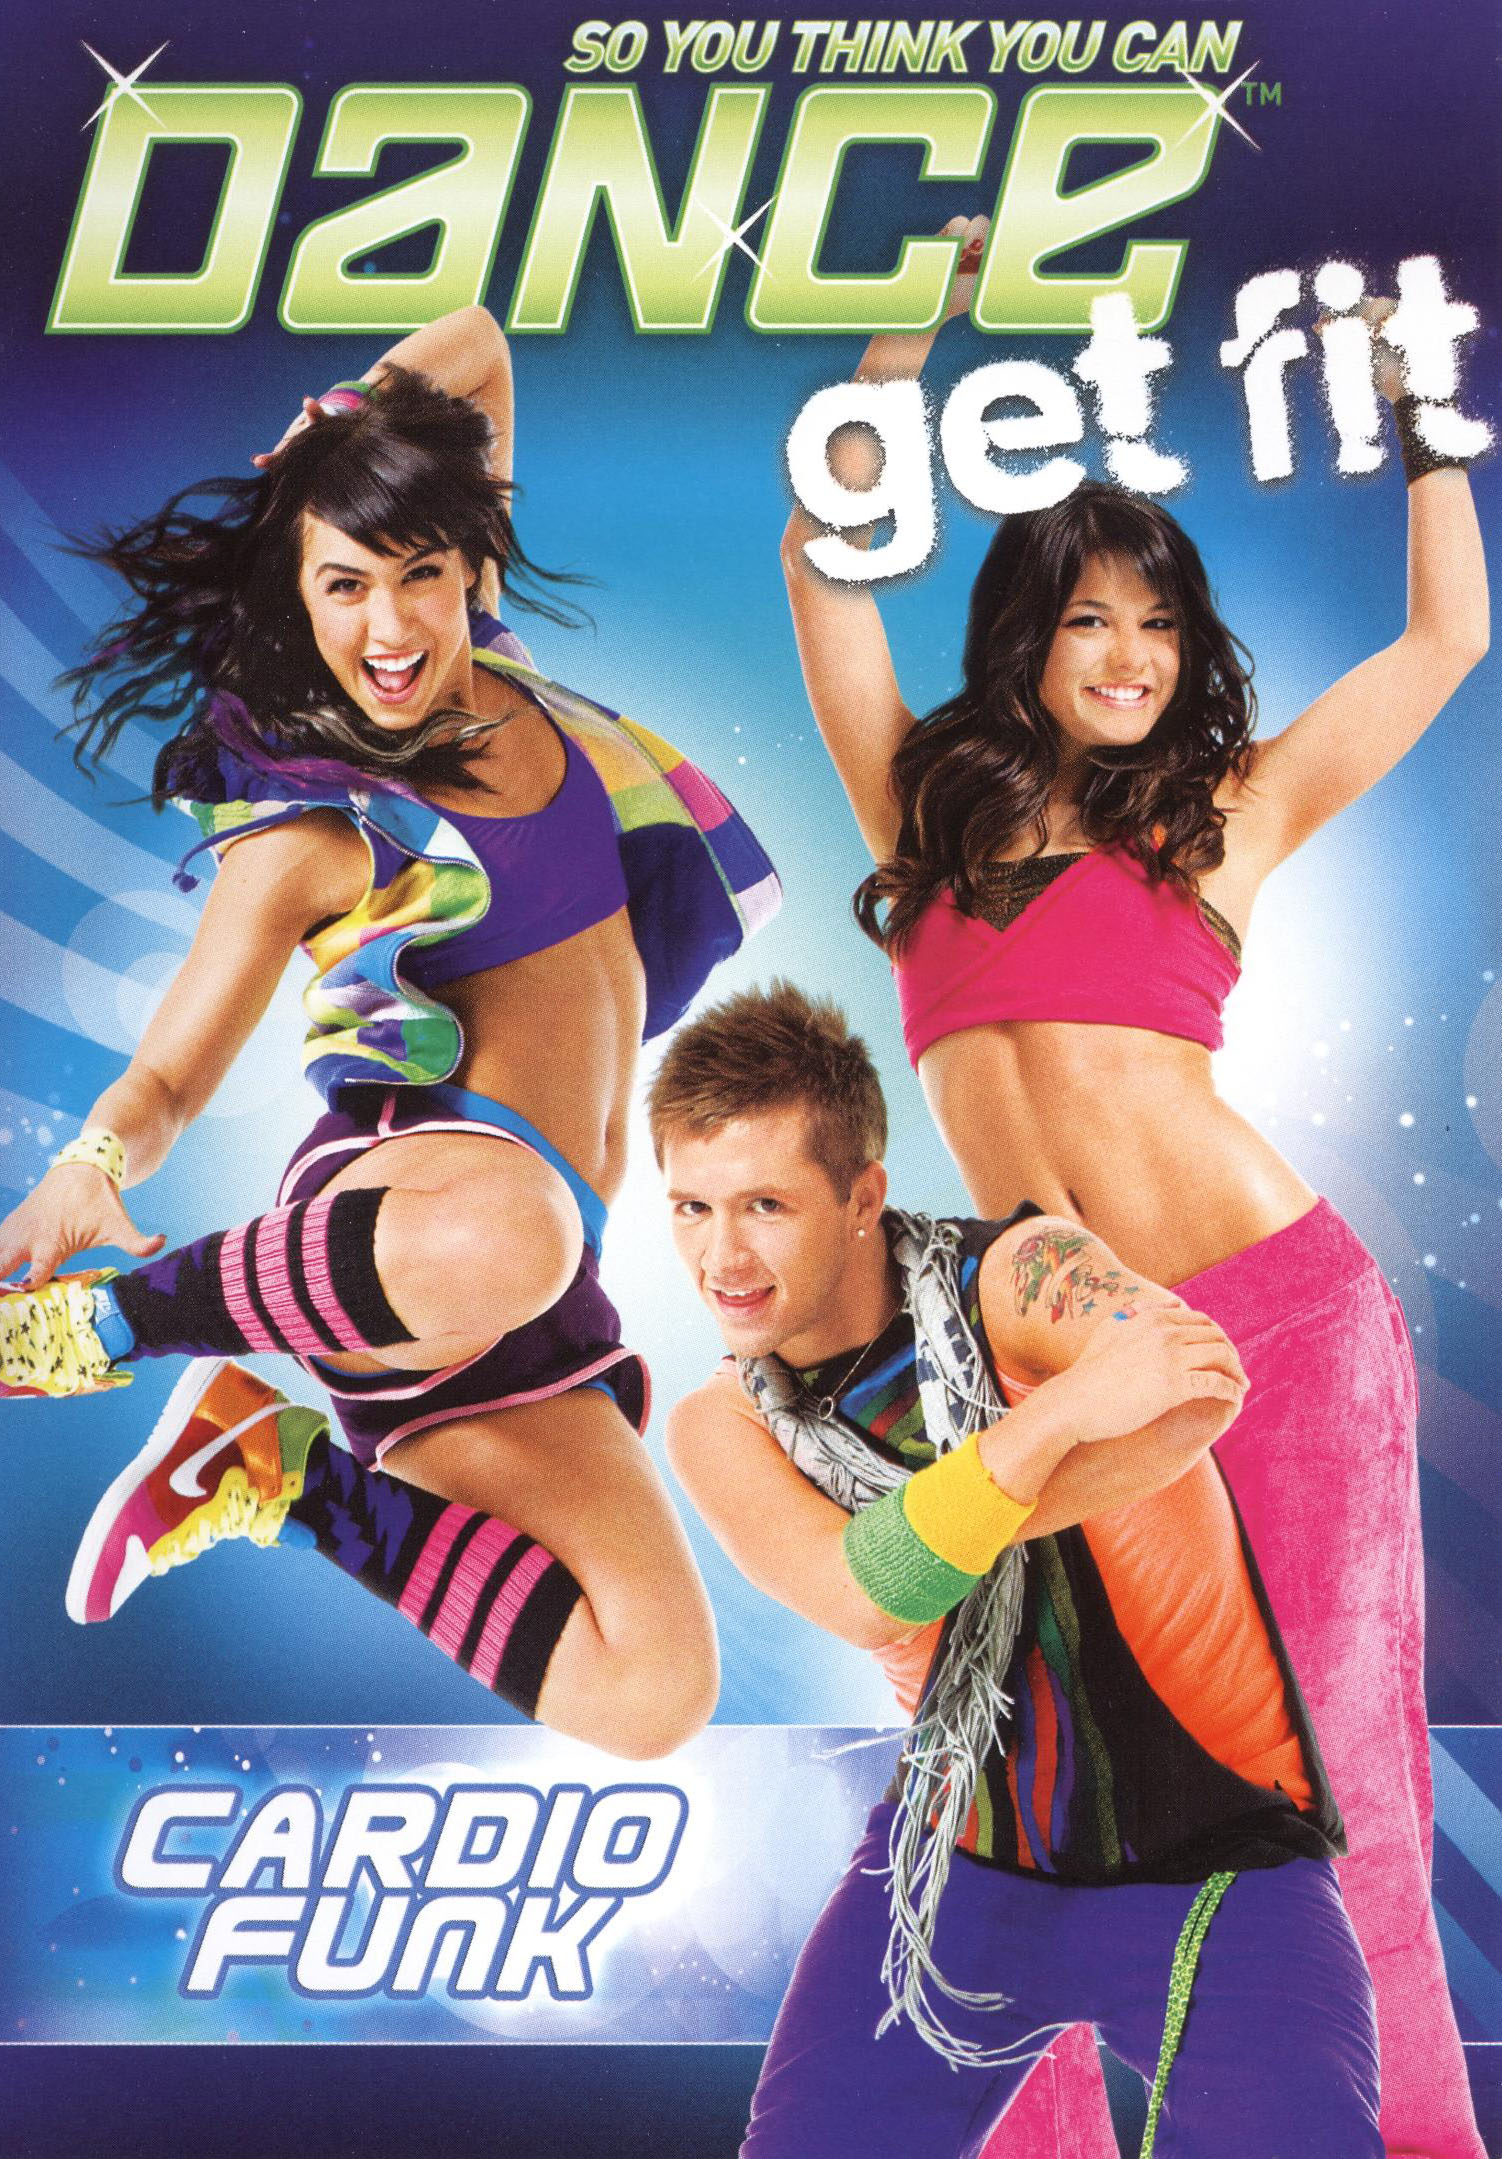 So You Think You Can Dance: Get Fit - Cardio Funk